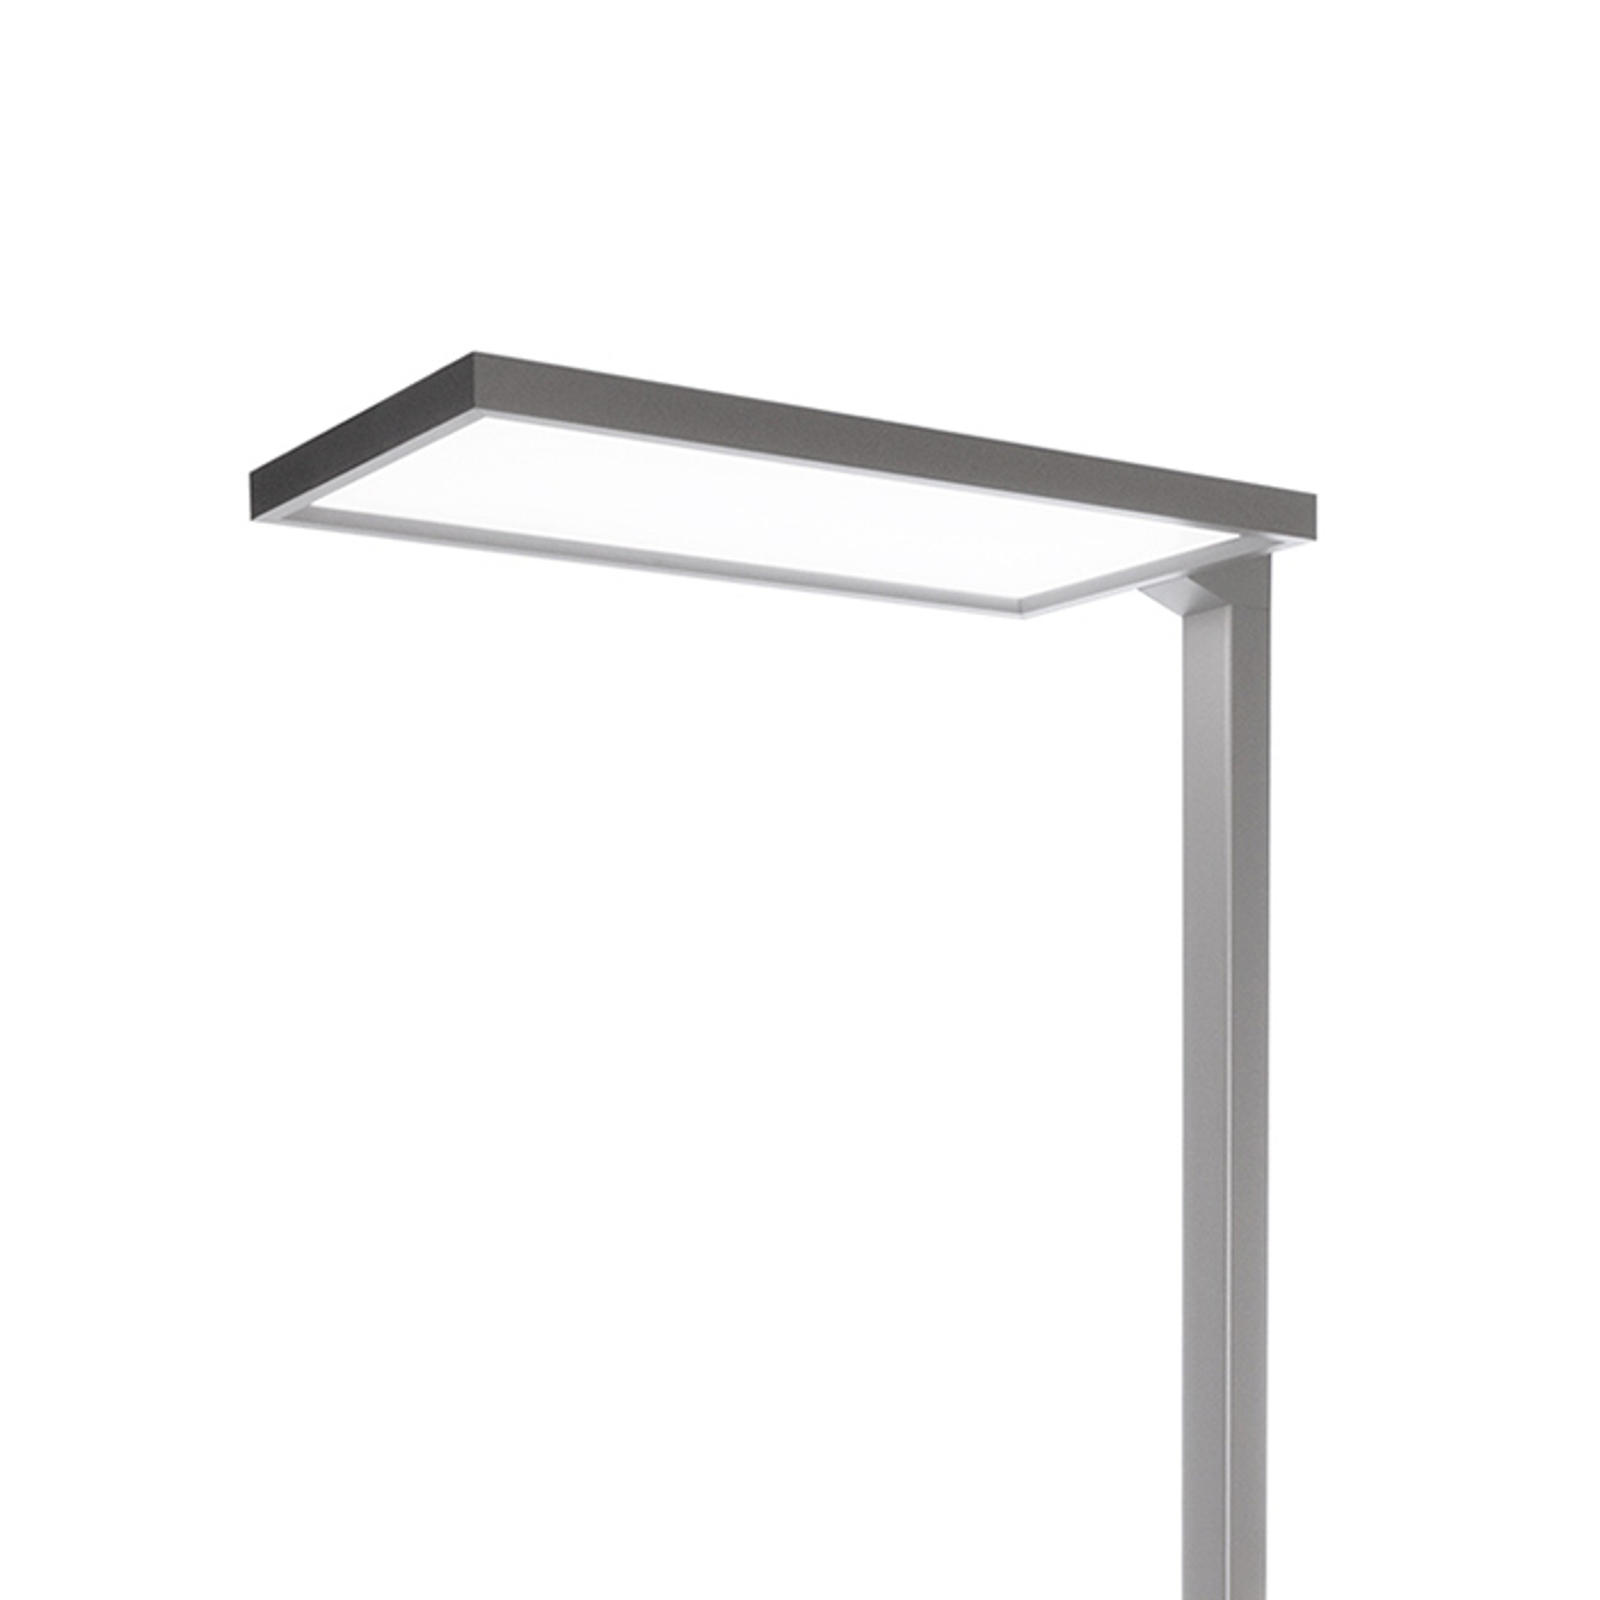 Office One LED workplace floor lamp 7,400 lm_2500157_1